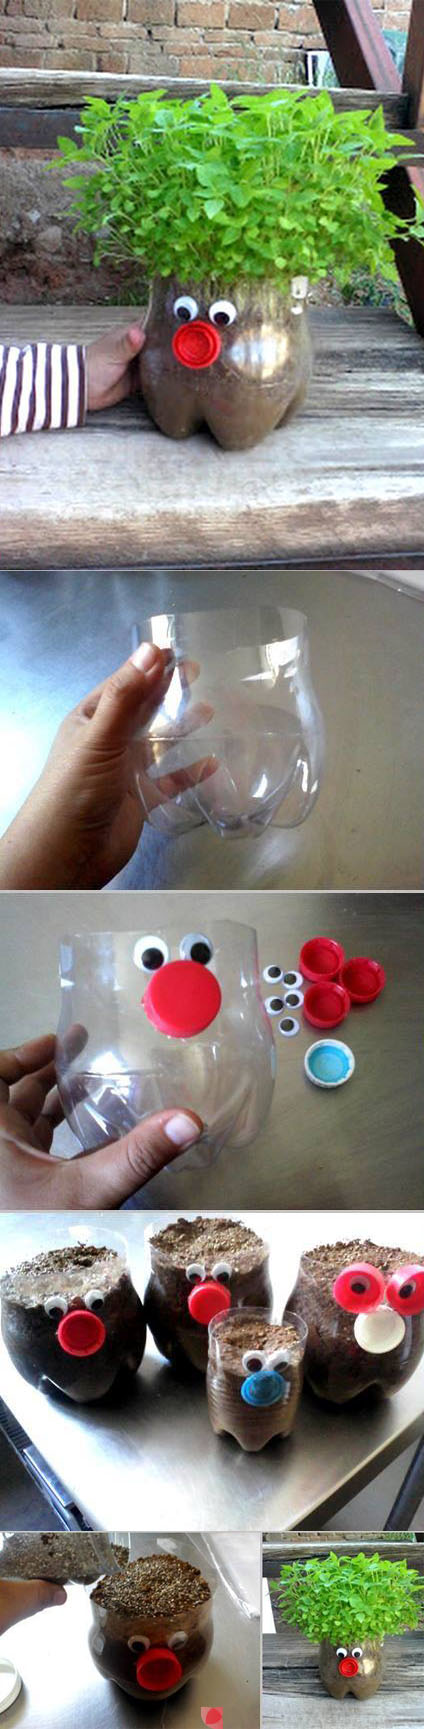 3 DIY Ideas  and  Tutorials To Recycle Plastic Bottles Into Useful Things